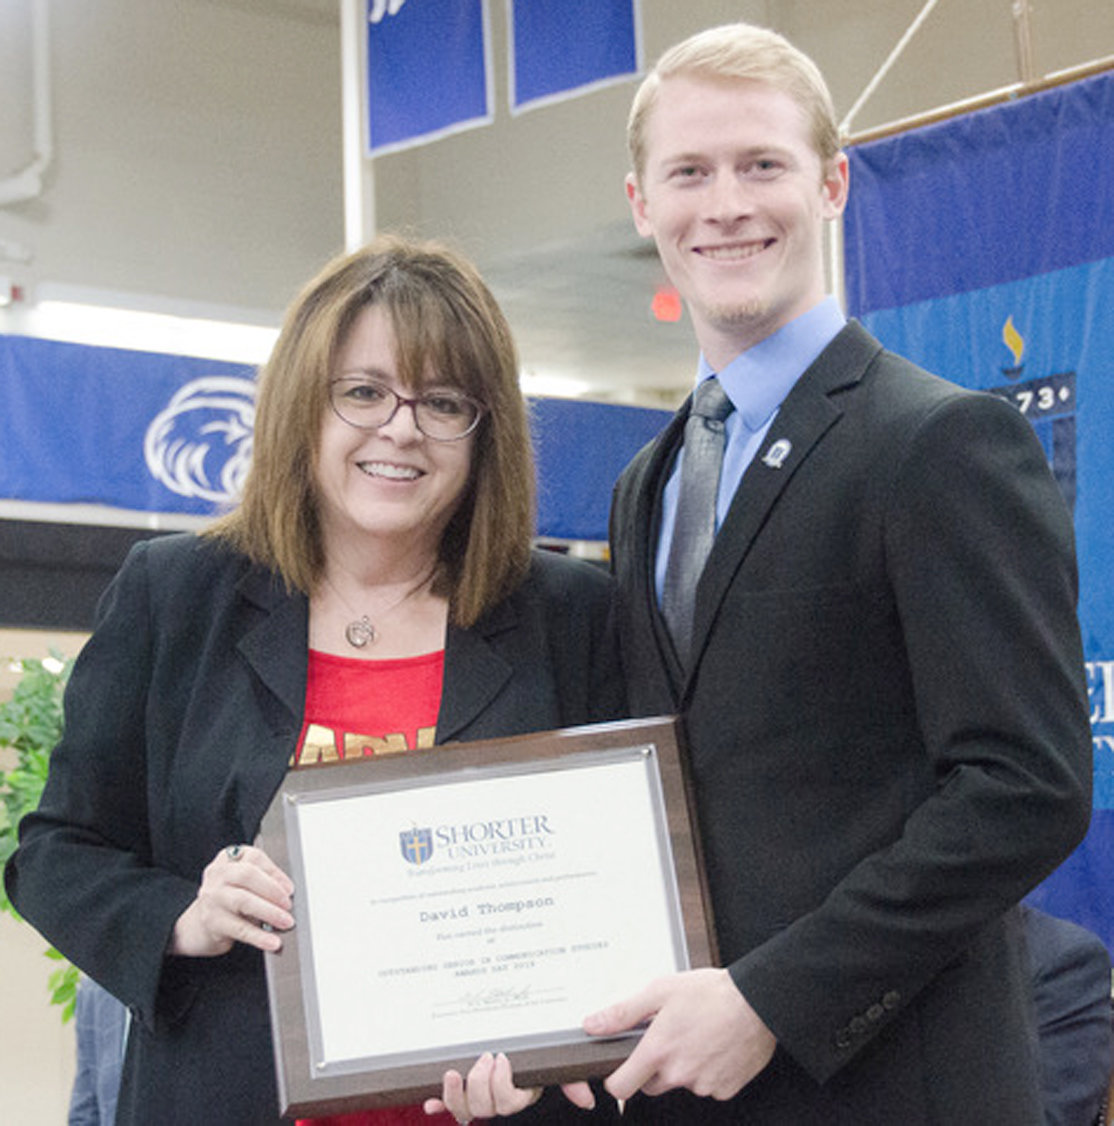 Dr. Kathi Vosevich, associate provost and dean of Shorter's College of Arts and Science, presents the Communication Studies Award to David Thompson of Cleveland. He also took home the Honors Academy Award.